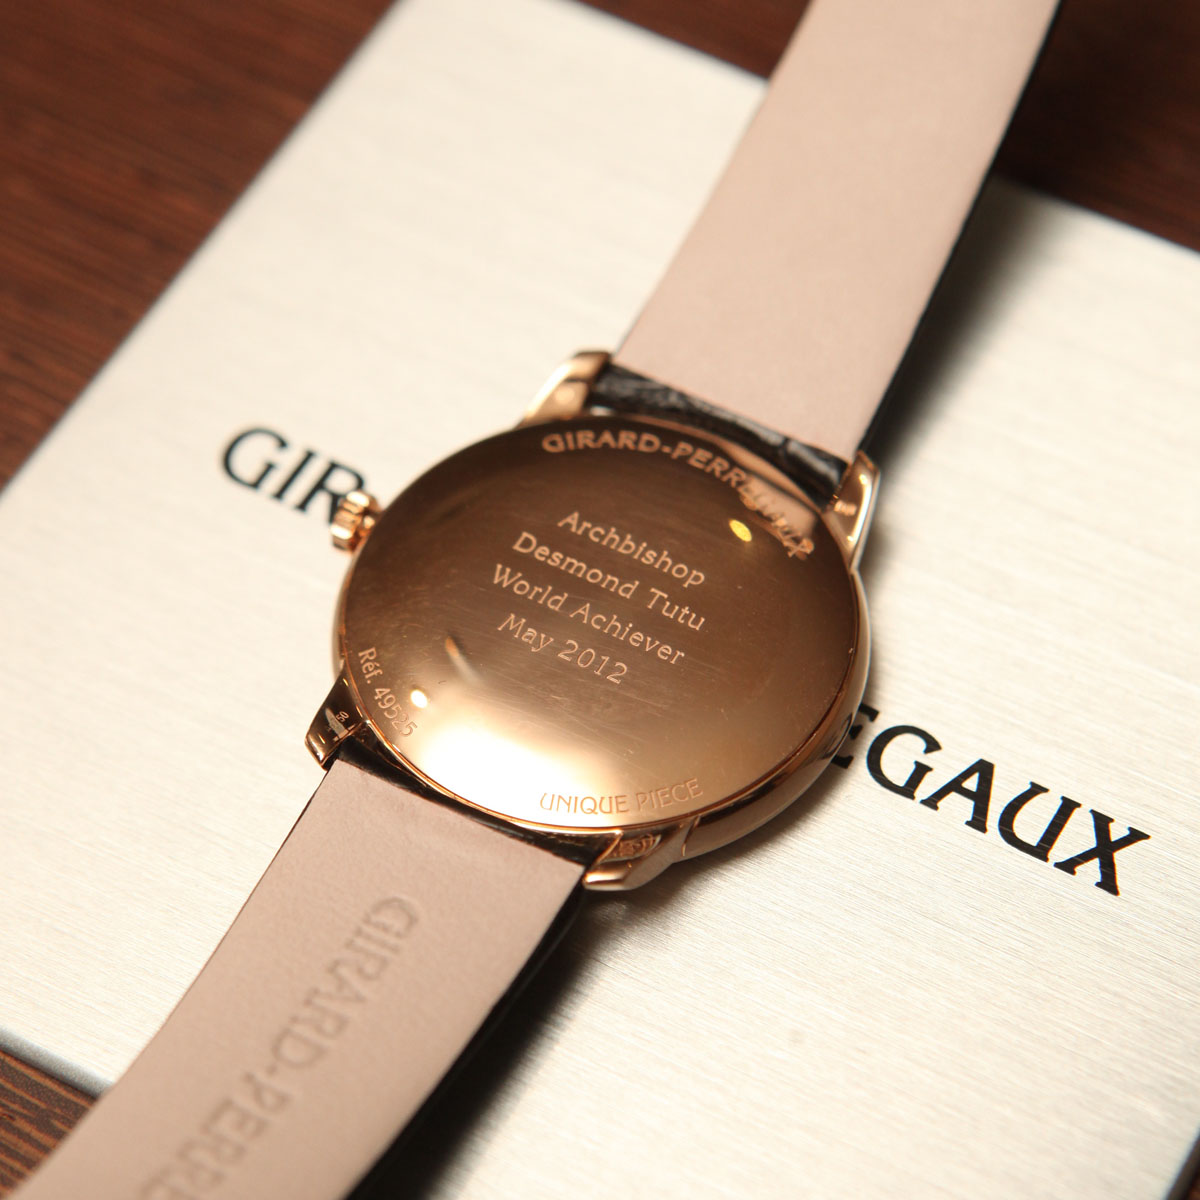 The Watch Quote: Photo - Girard-Perregaux honors Archbishop Desmond Tutu